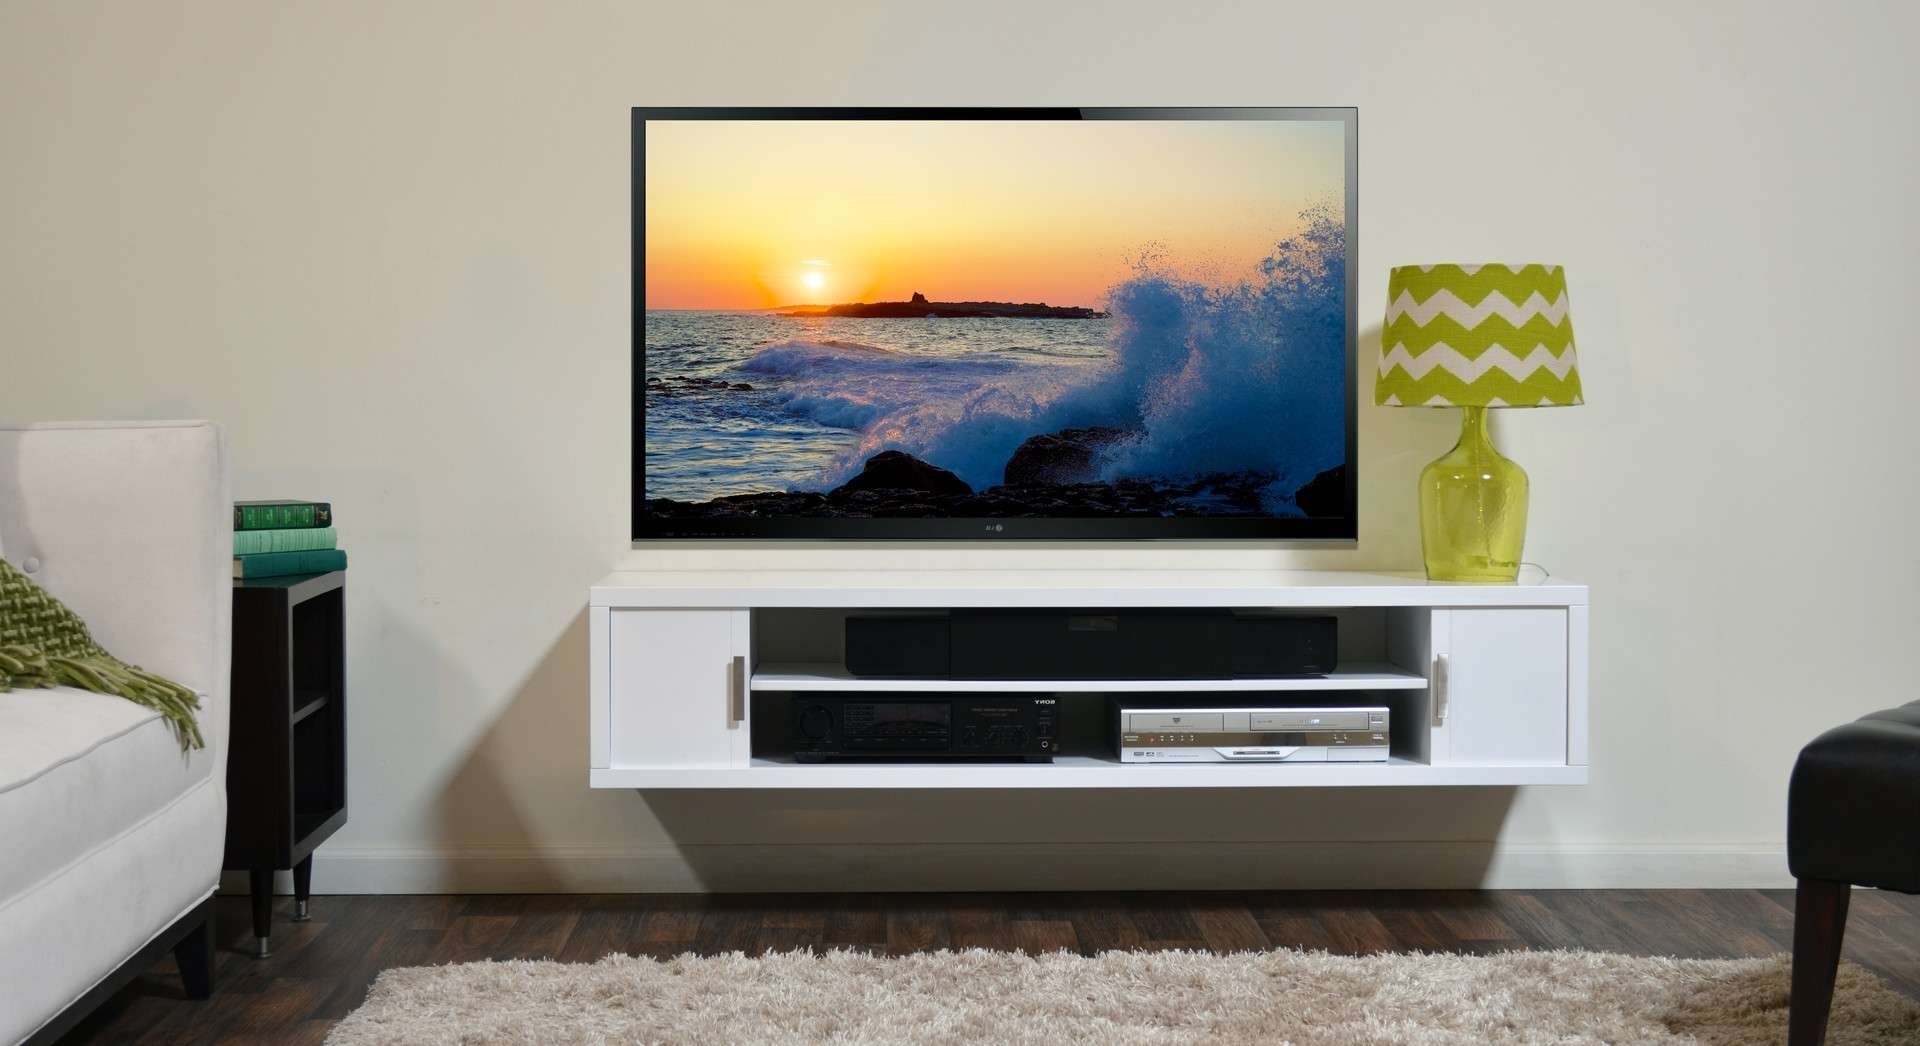 Wall Mount Tv Stands – Home Designing Throughout Wall Mounted Tv Stands For Flat Screens (View 15 of 15)